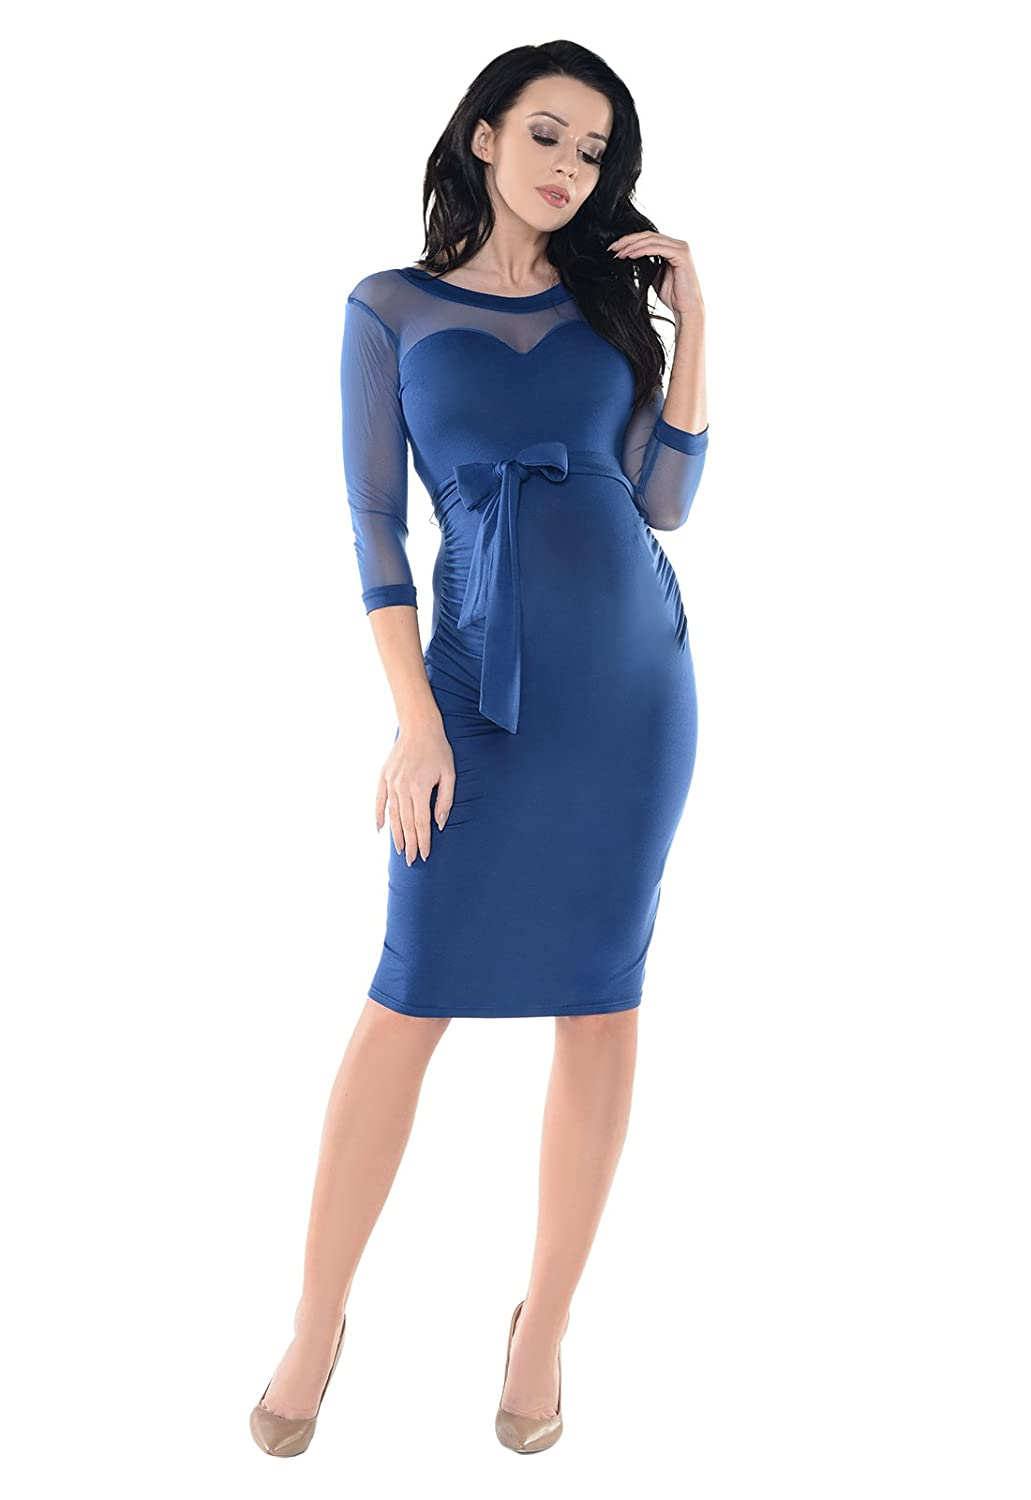 Purpless Maternity Ruched Bodycon Pregnancy Dress with Sheer Mesh Panel D008